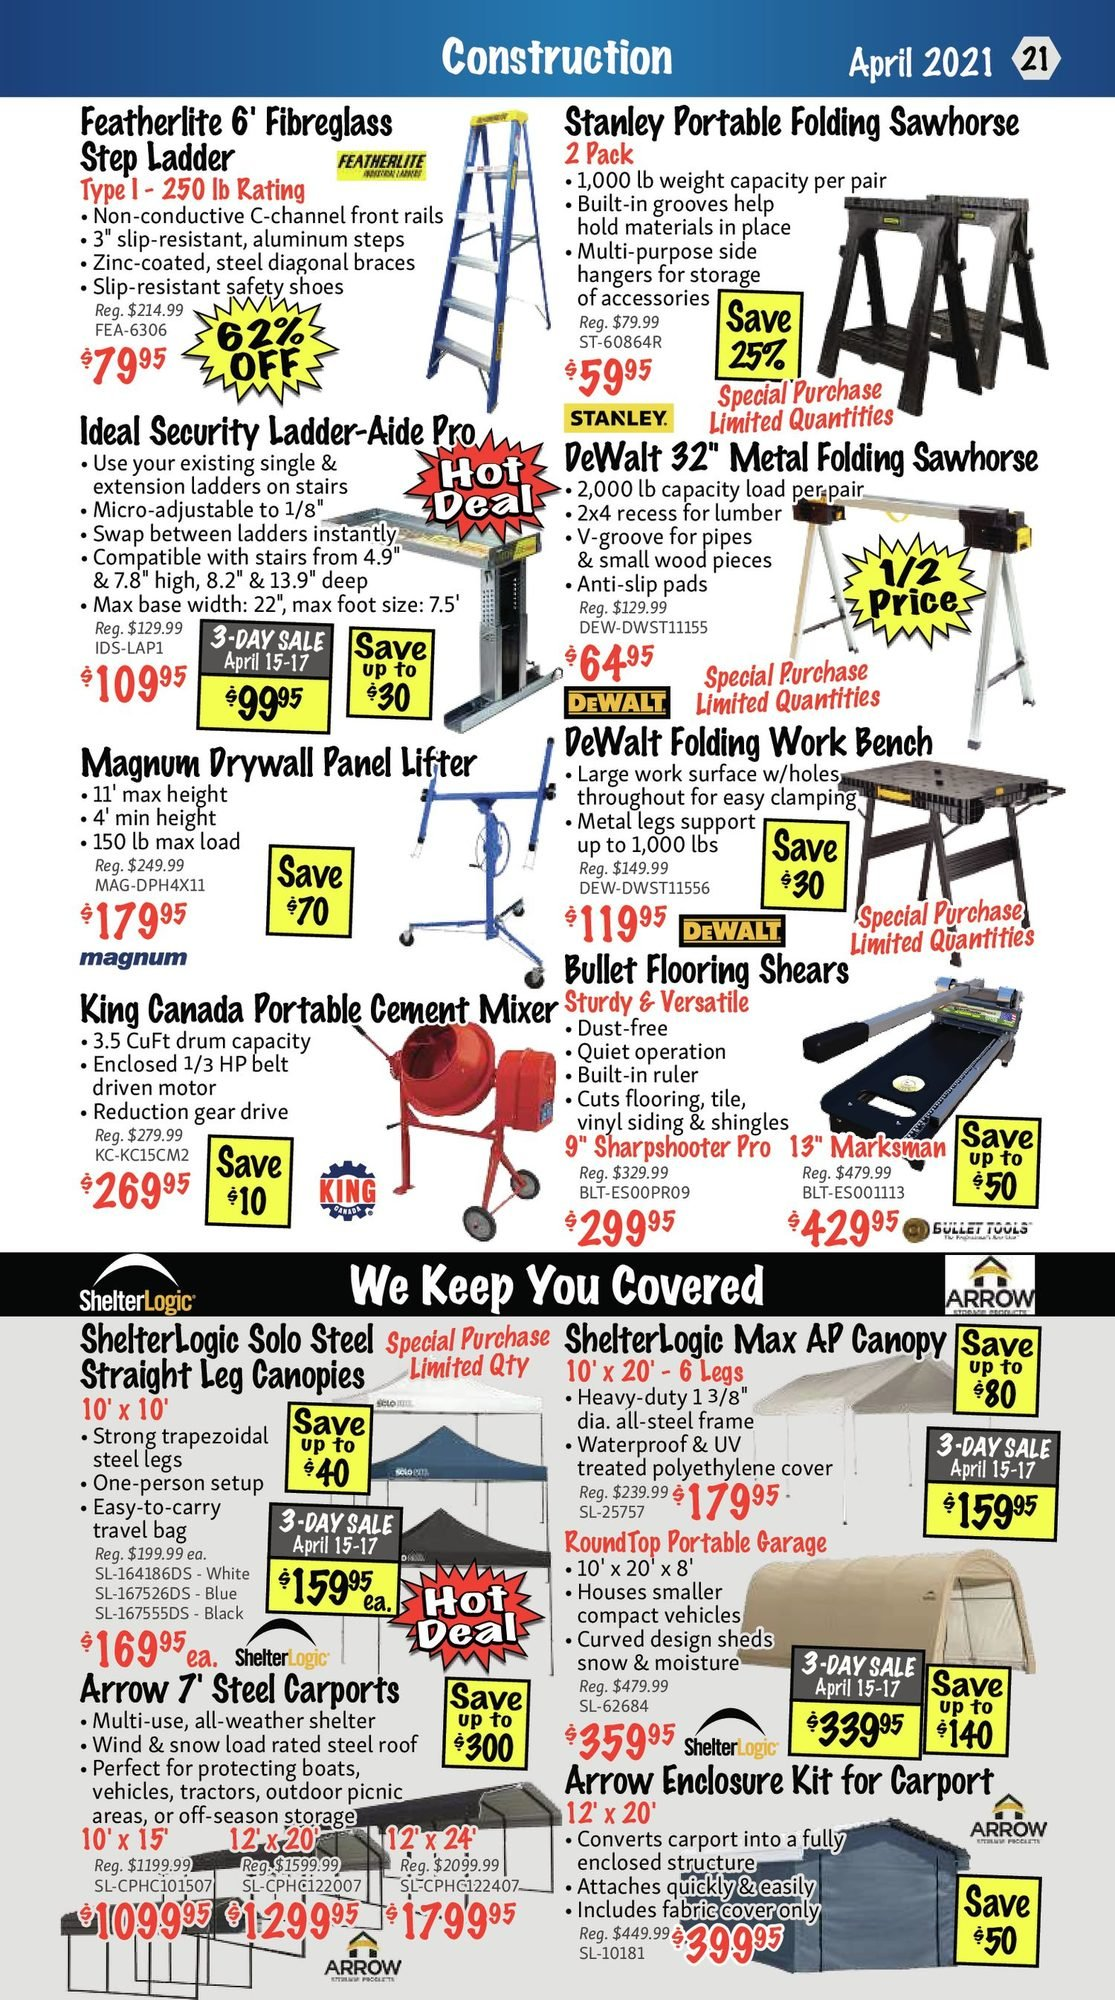 KMS Tools - Hand Tools, Air Tools & Compressor Sale - Page 21